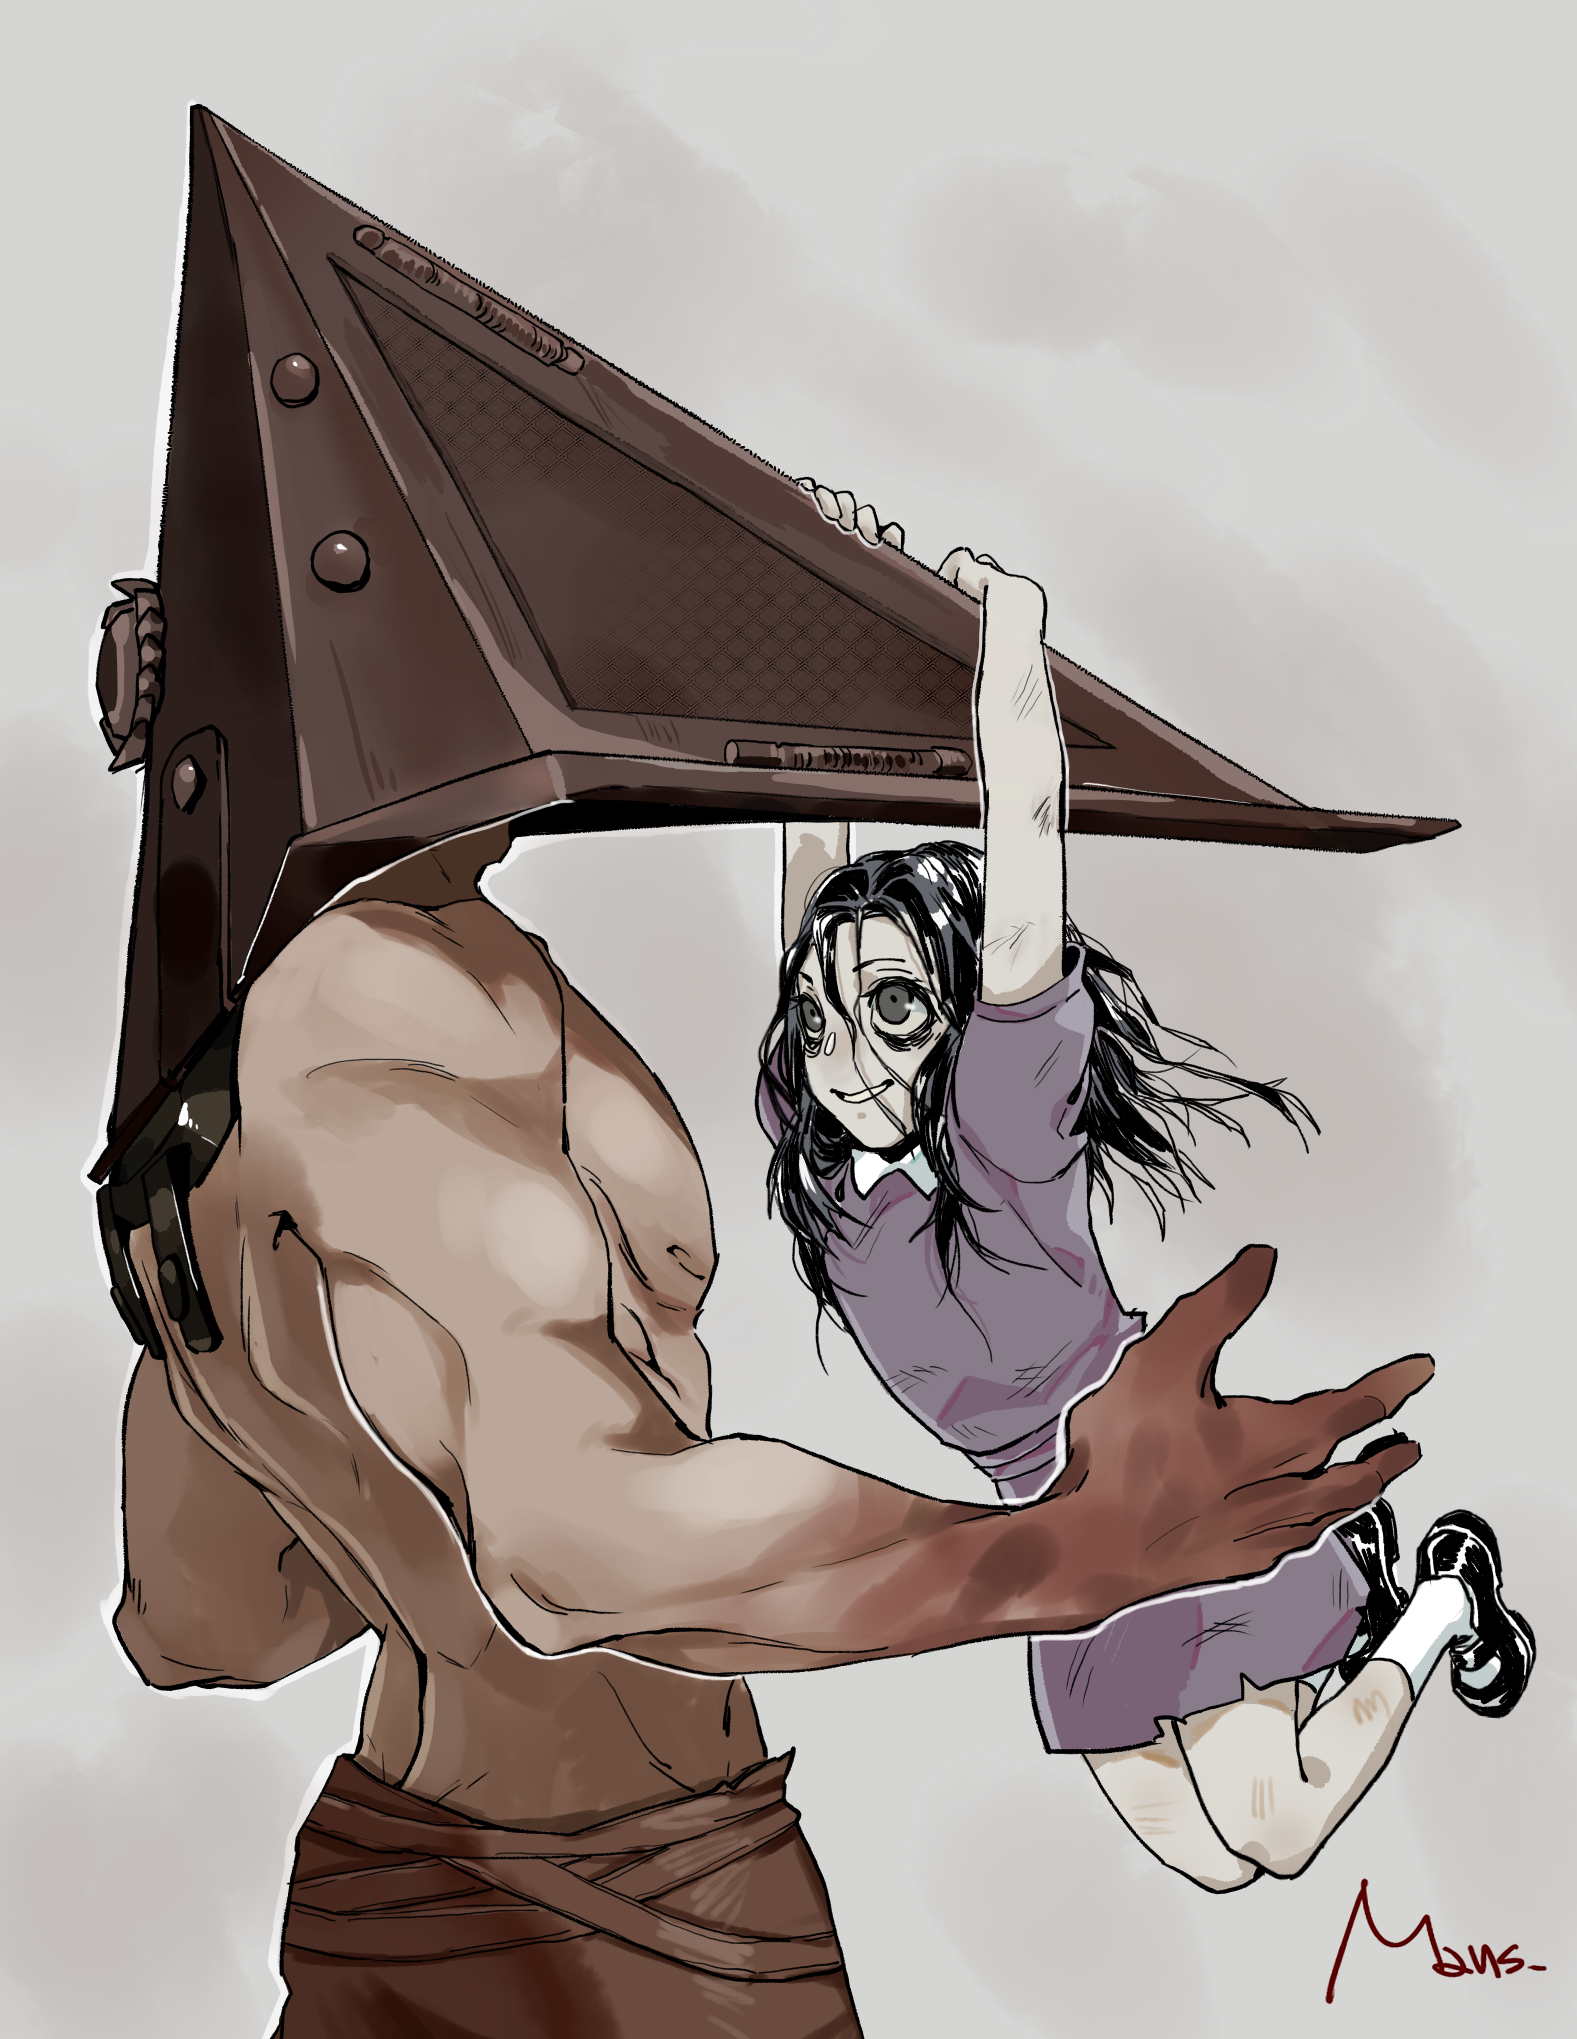 Pyramid Head And Alessa Gillespie Silent Hill And 1 More Drawn